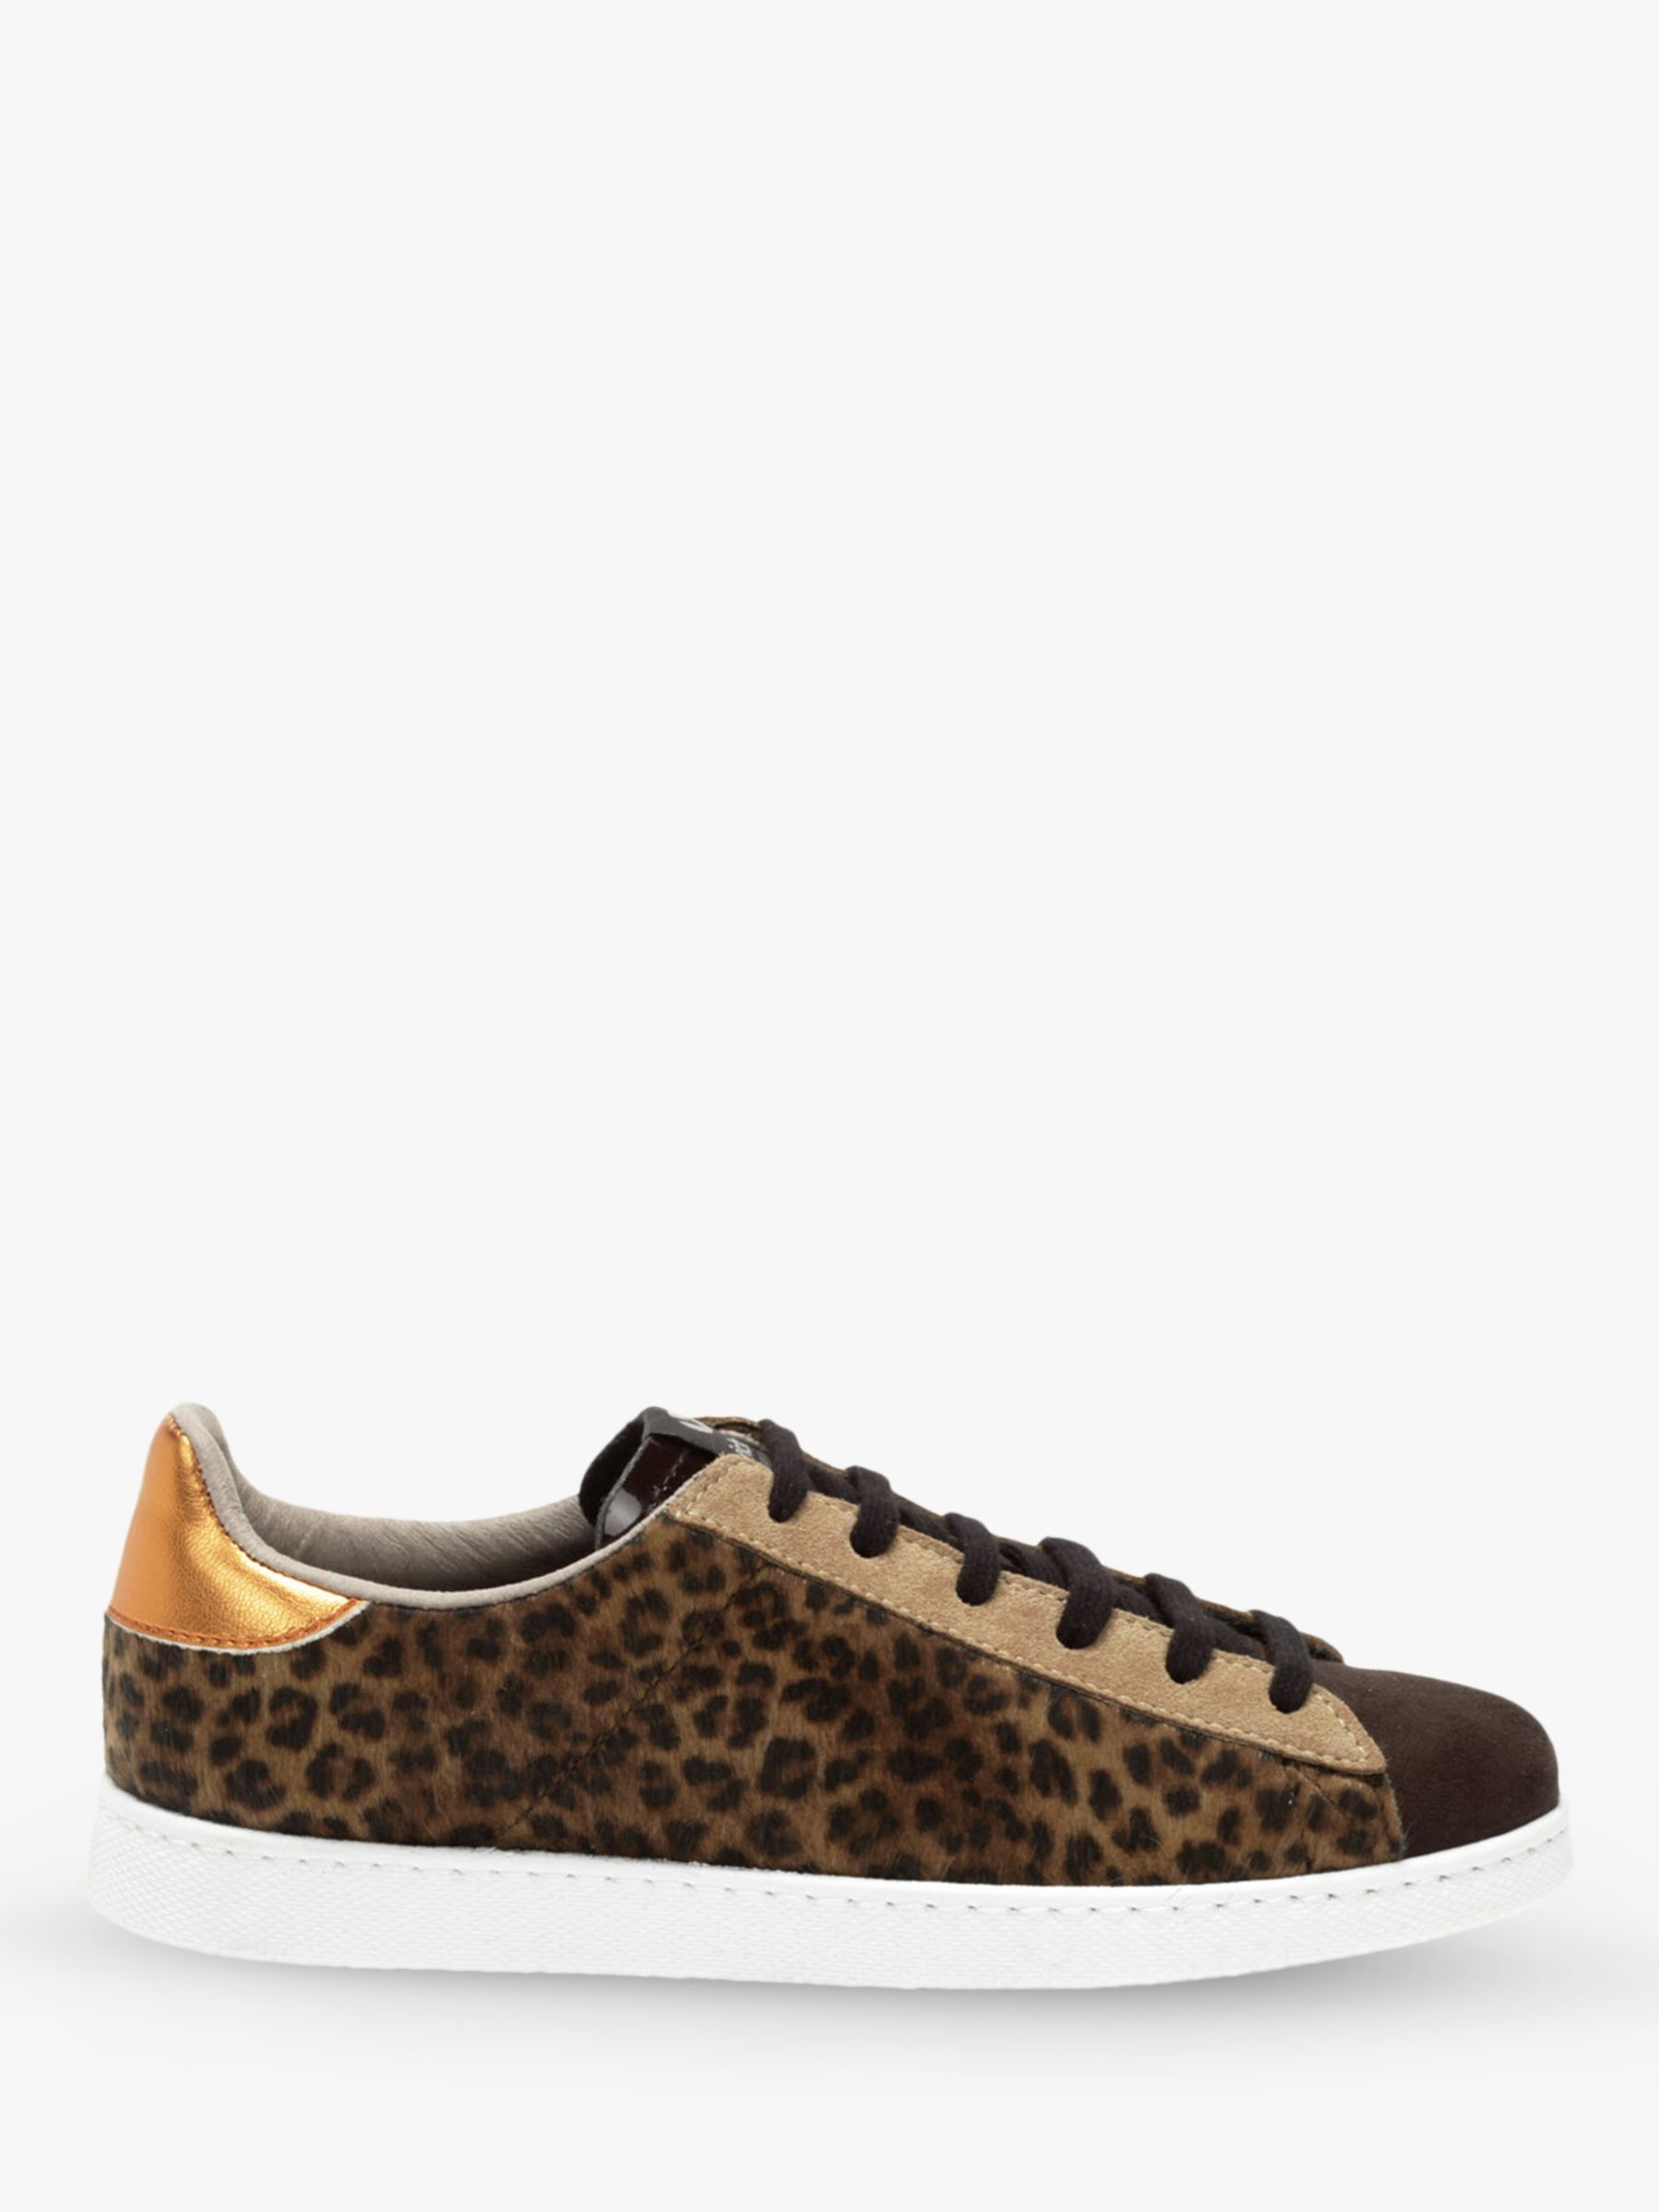 69a15ff3b24 Victoria Shoes Tenis Animal Print Trainers, Brown at John Lewis & Partners